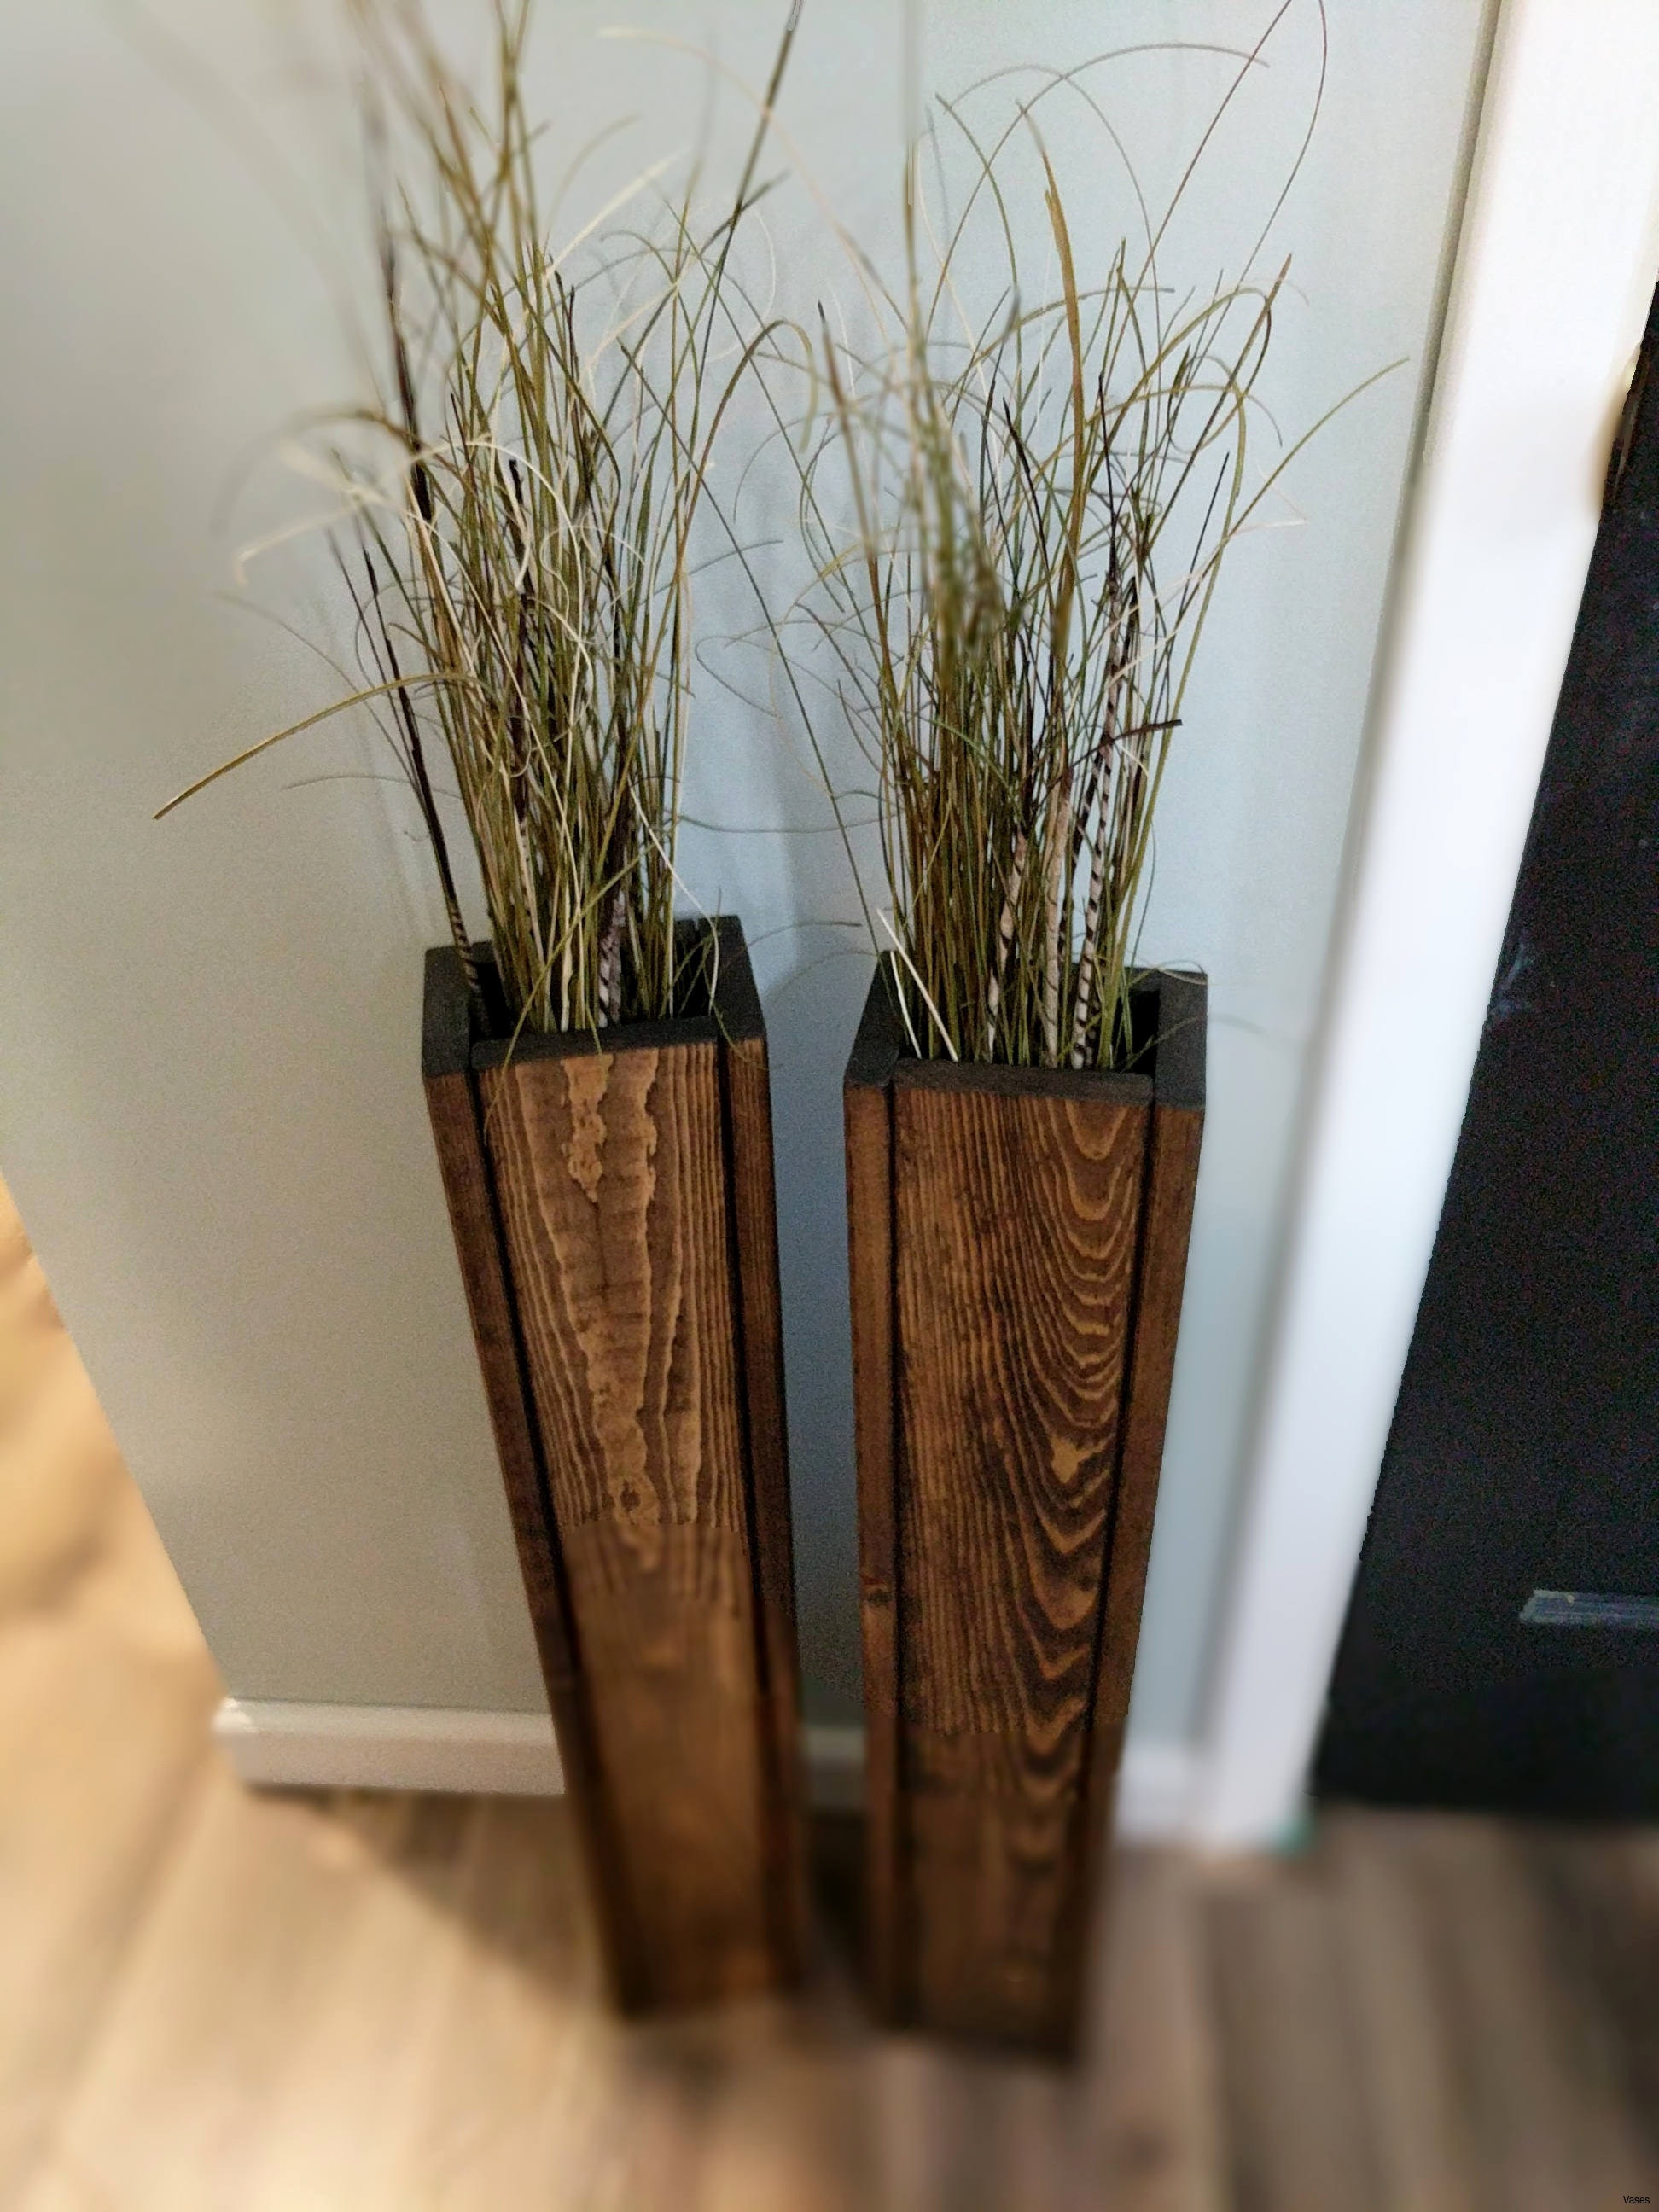 12 Stylish Shell Vase Filler 2021 free download shell vase filler of vases artificial plants collection page 13 within floor vase with sticks image 25 new floor vase set 3 of floor vase with sticks